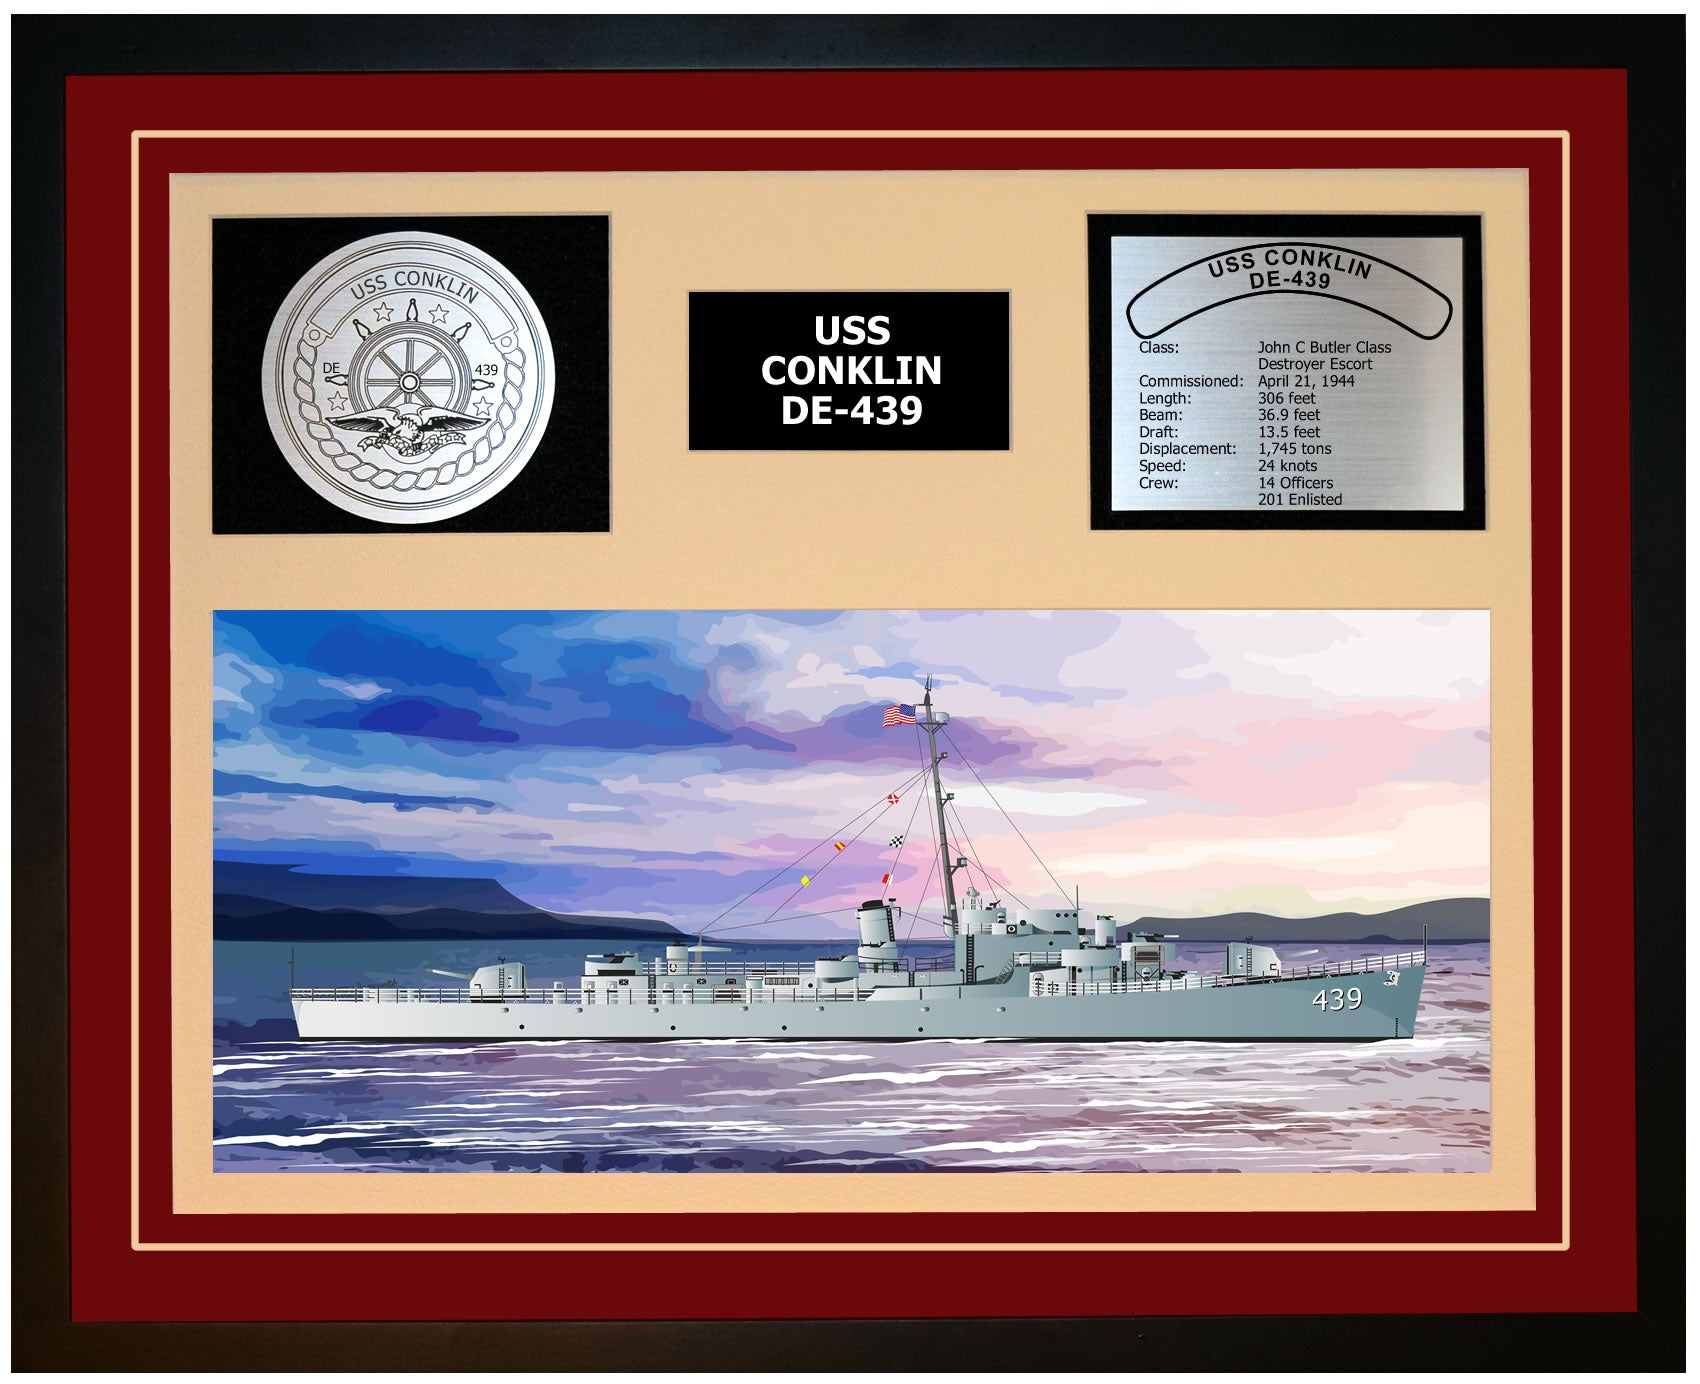 USS CONKLIN DE-439 Framed Navy Ship Display Burgundy